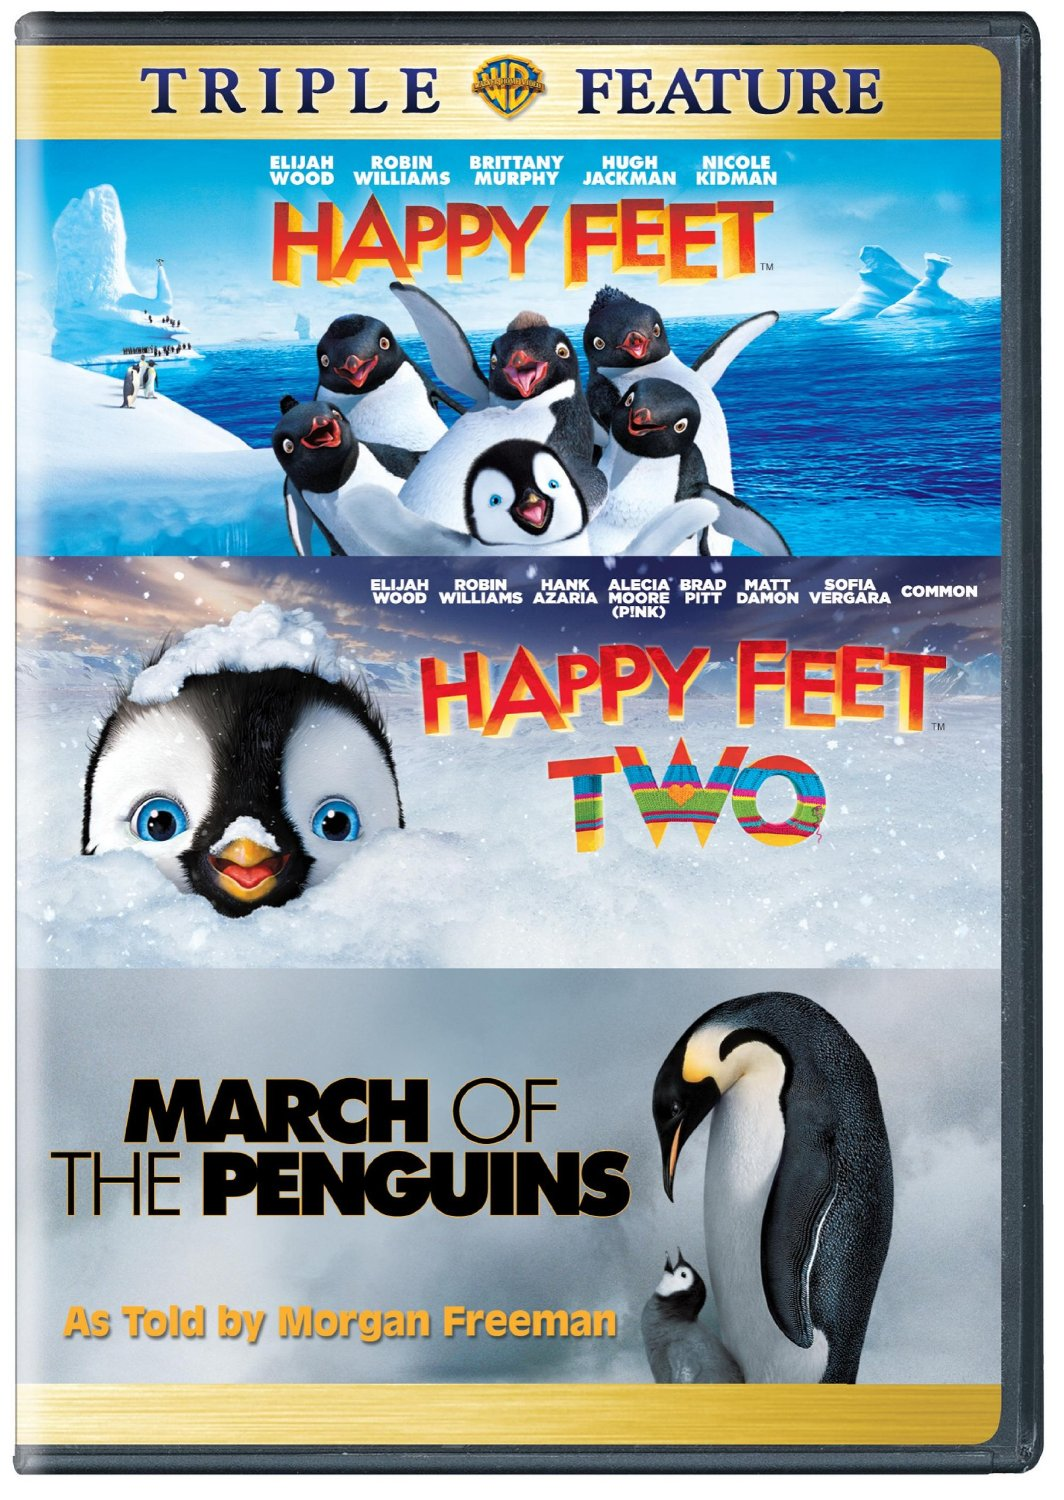 Babies Toys Walmart Happy Feet Dvd Box Set For 6 Free Shipping From Amazon